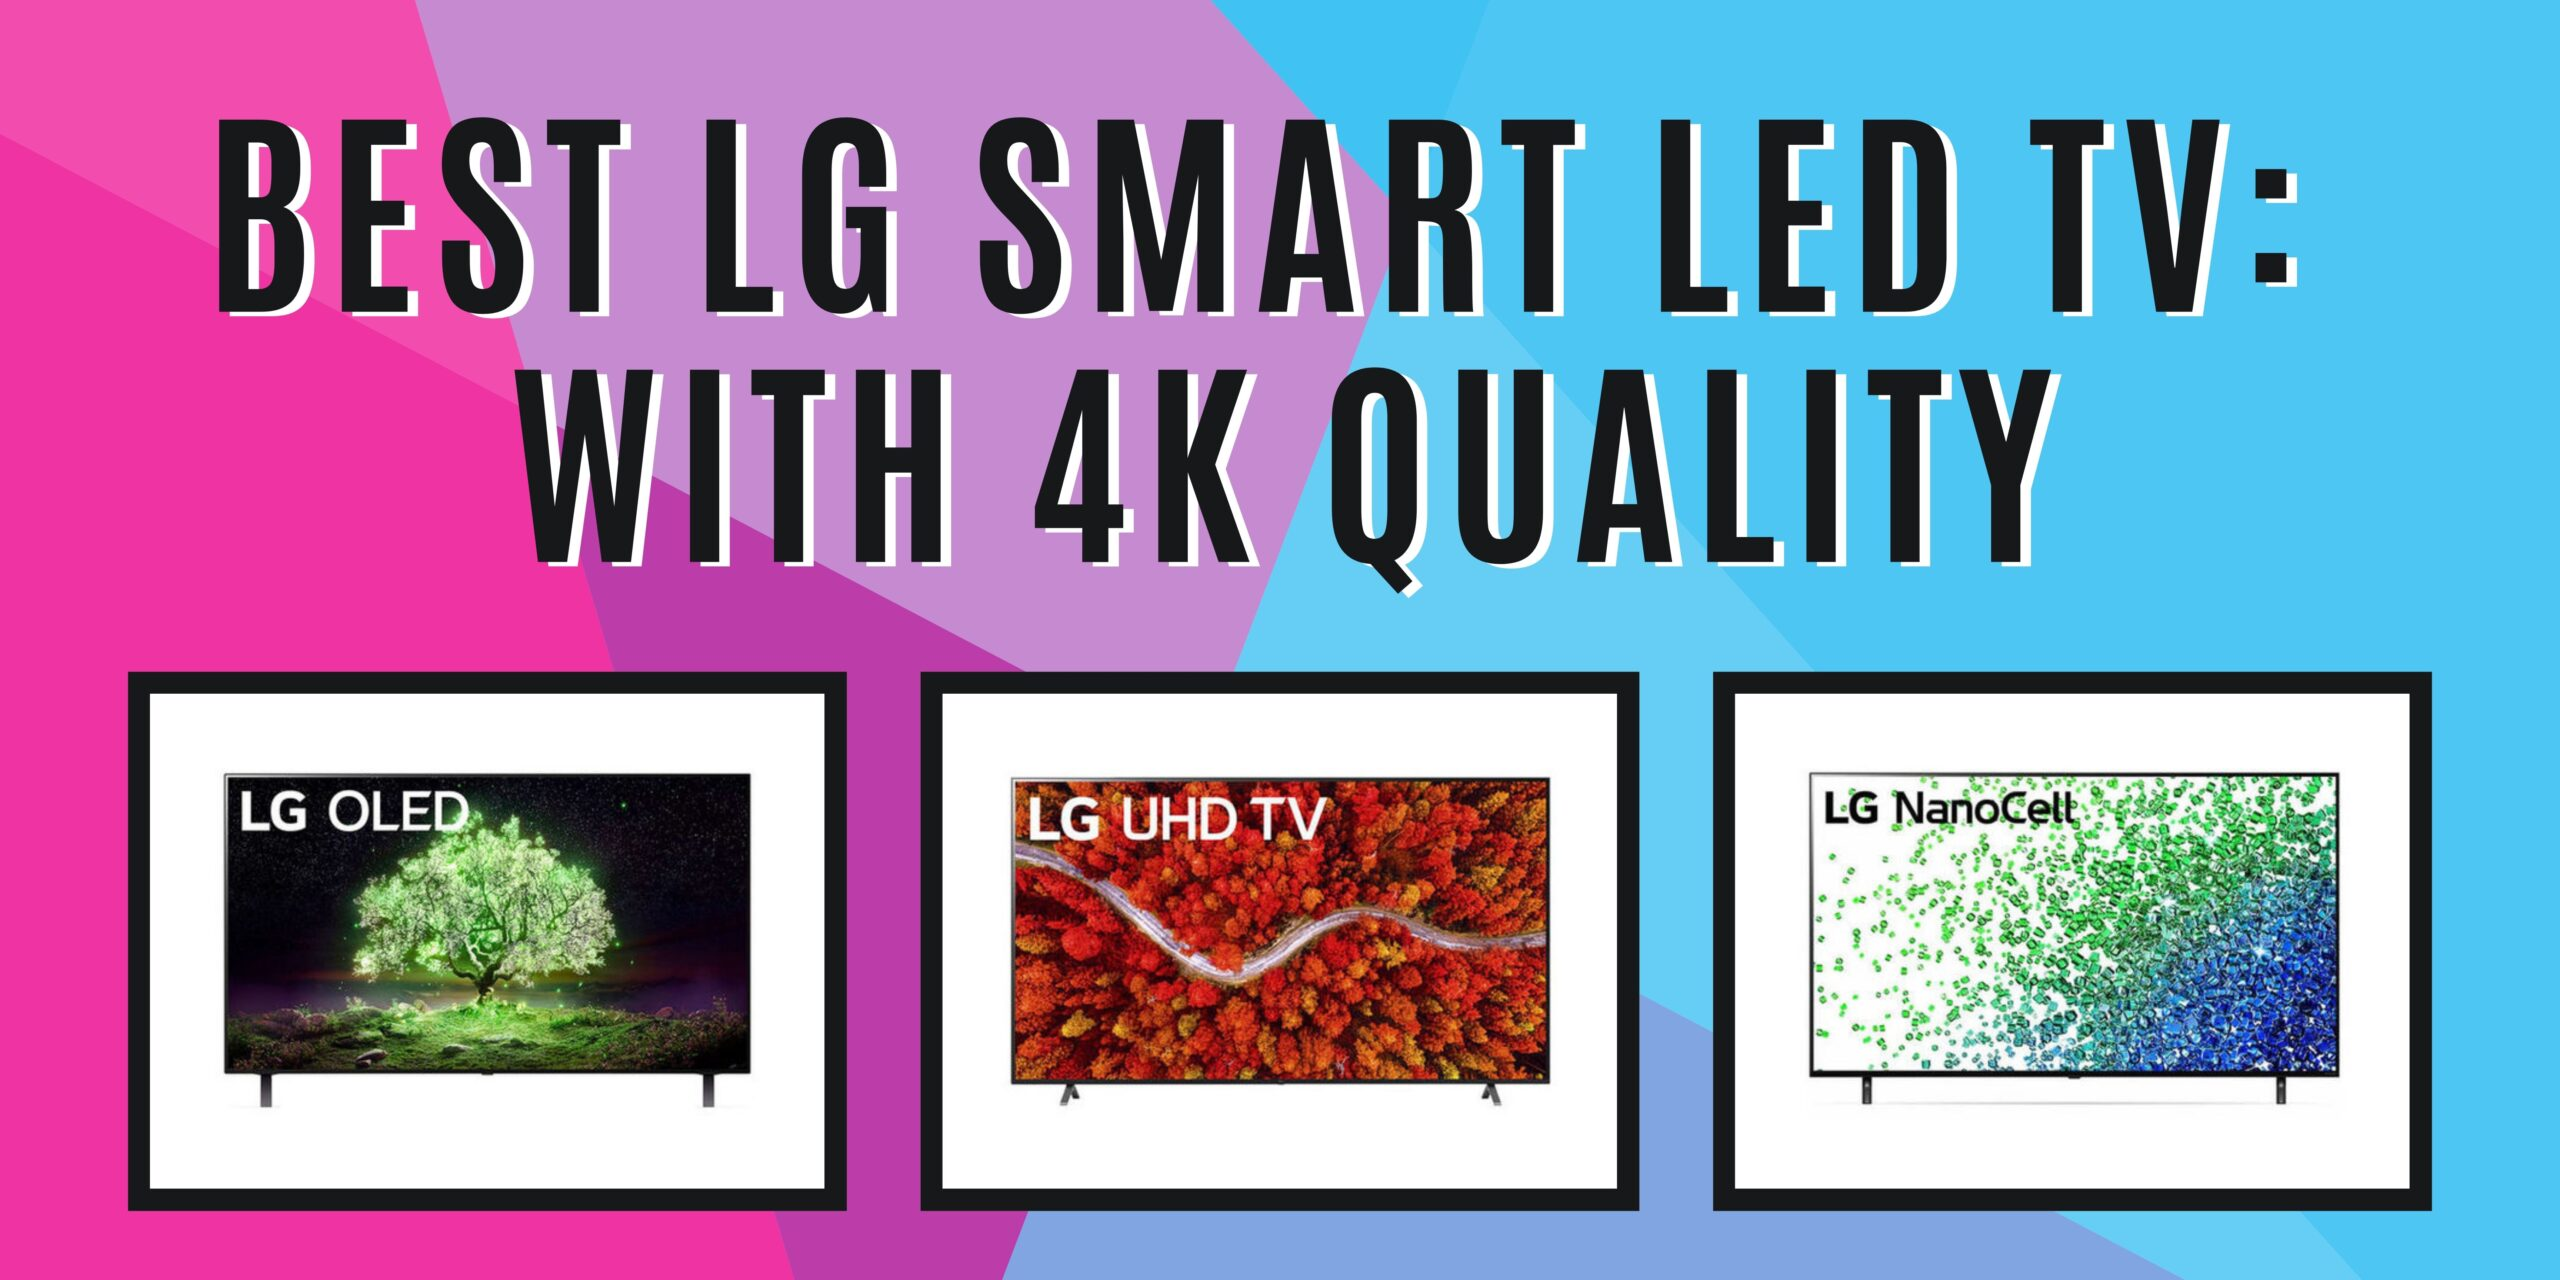 Best LG Smart LED TV: With 4K Quality